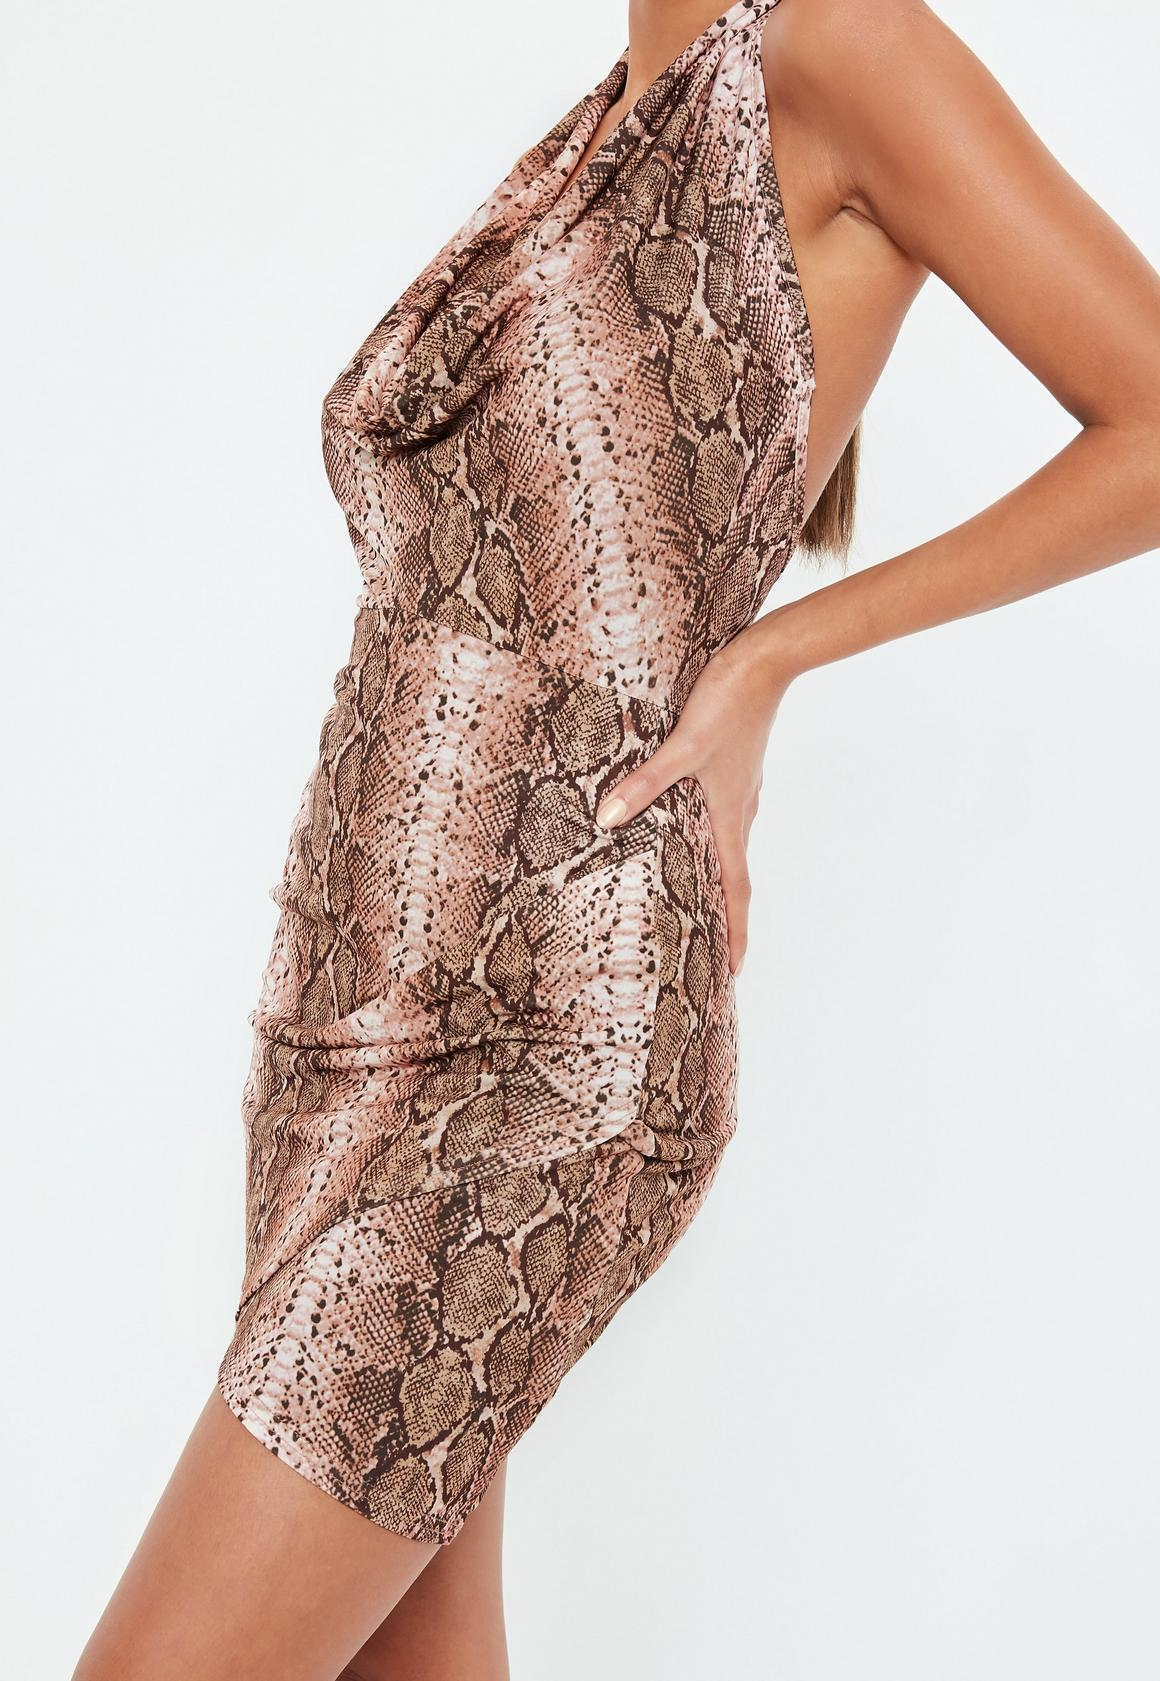 Missguided - robe dos-nu courte marron à imprimé serpent - 3